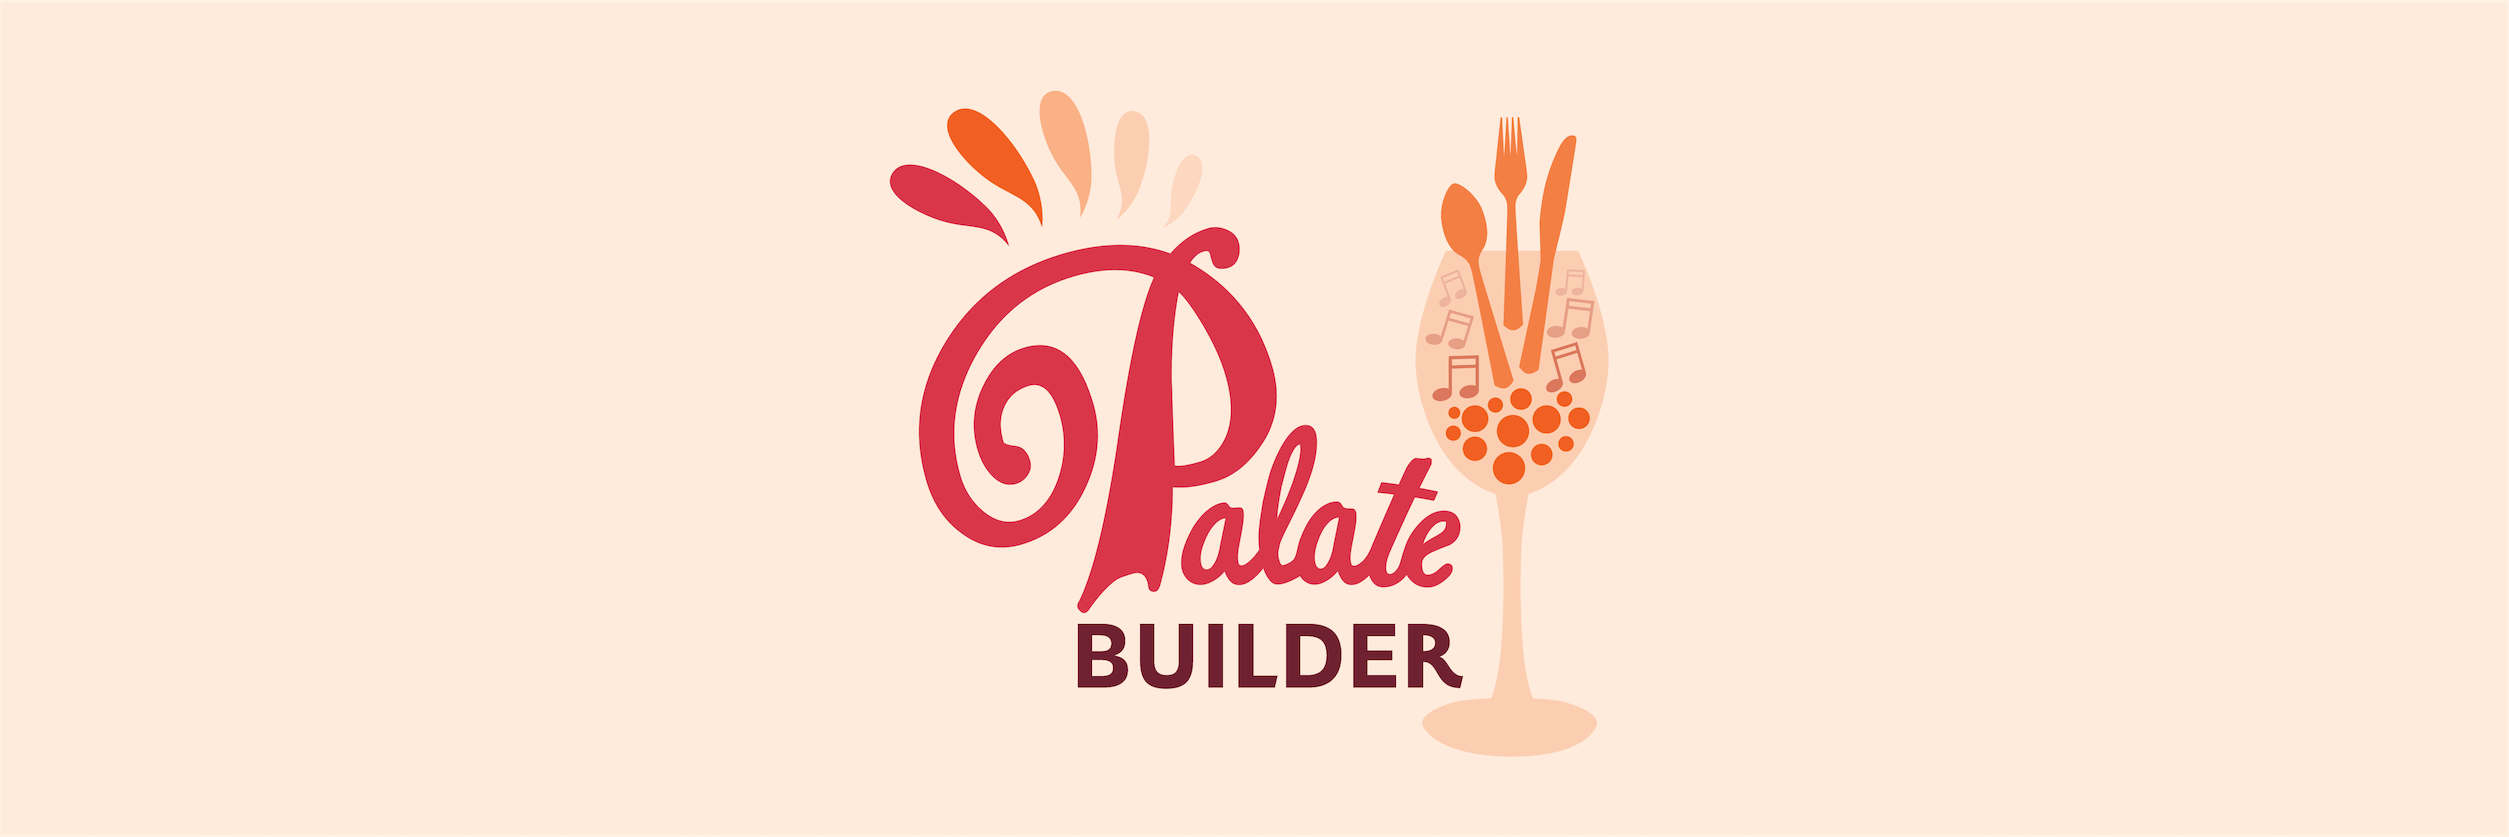 Palate Builder - Learn To Taste Like A Pro Online Wine Tasting Class at LearnAboutWine.com